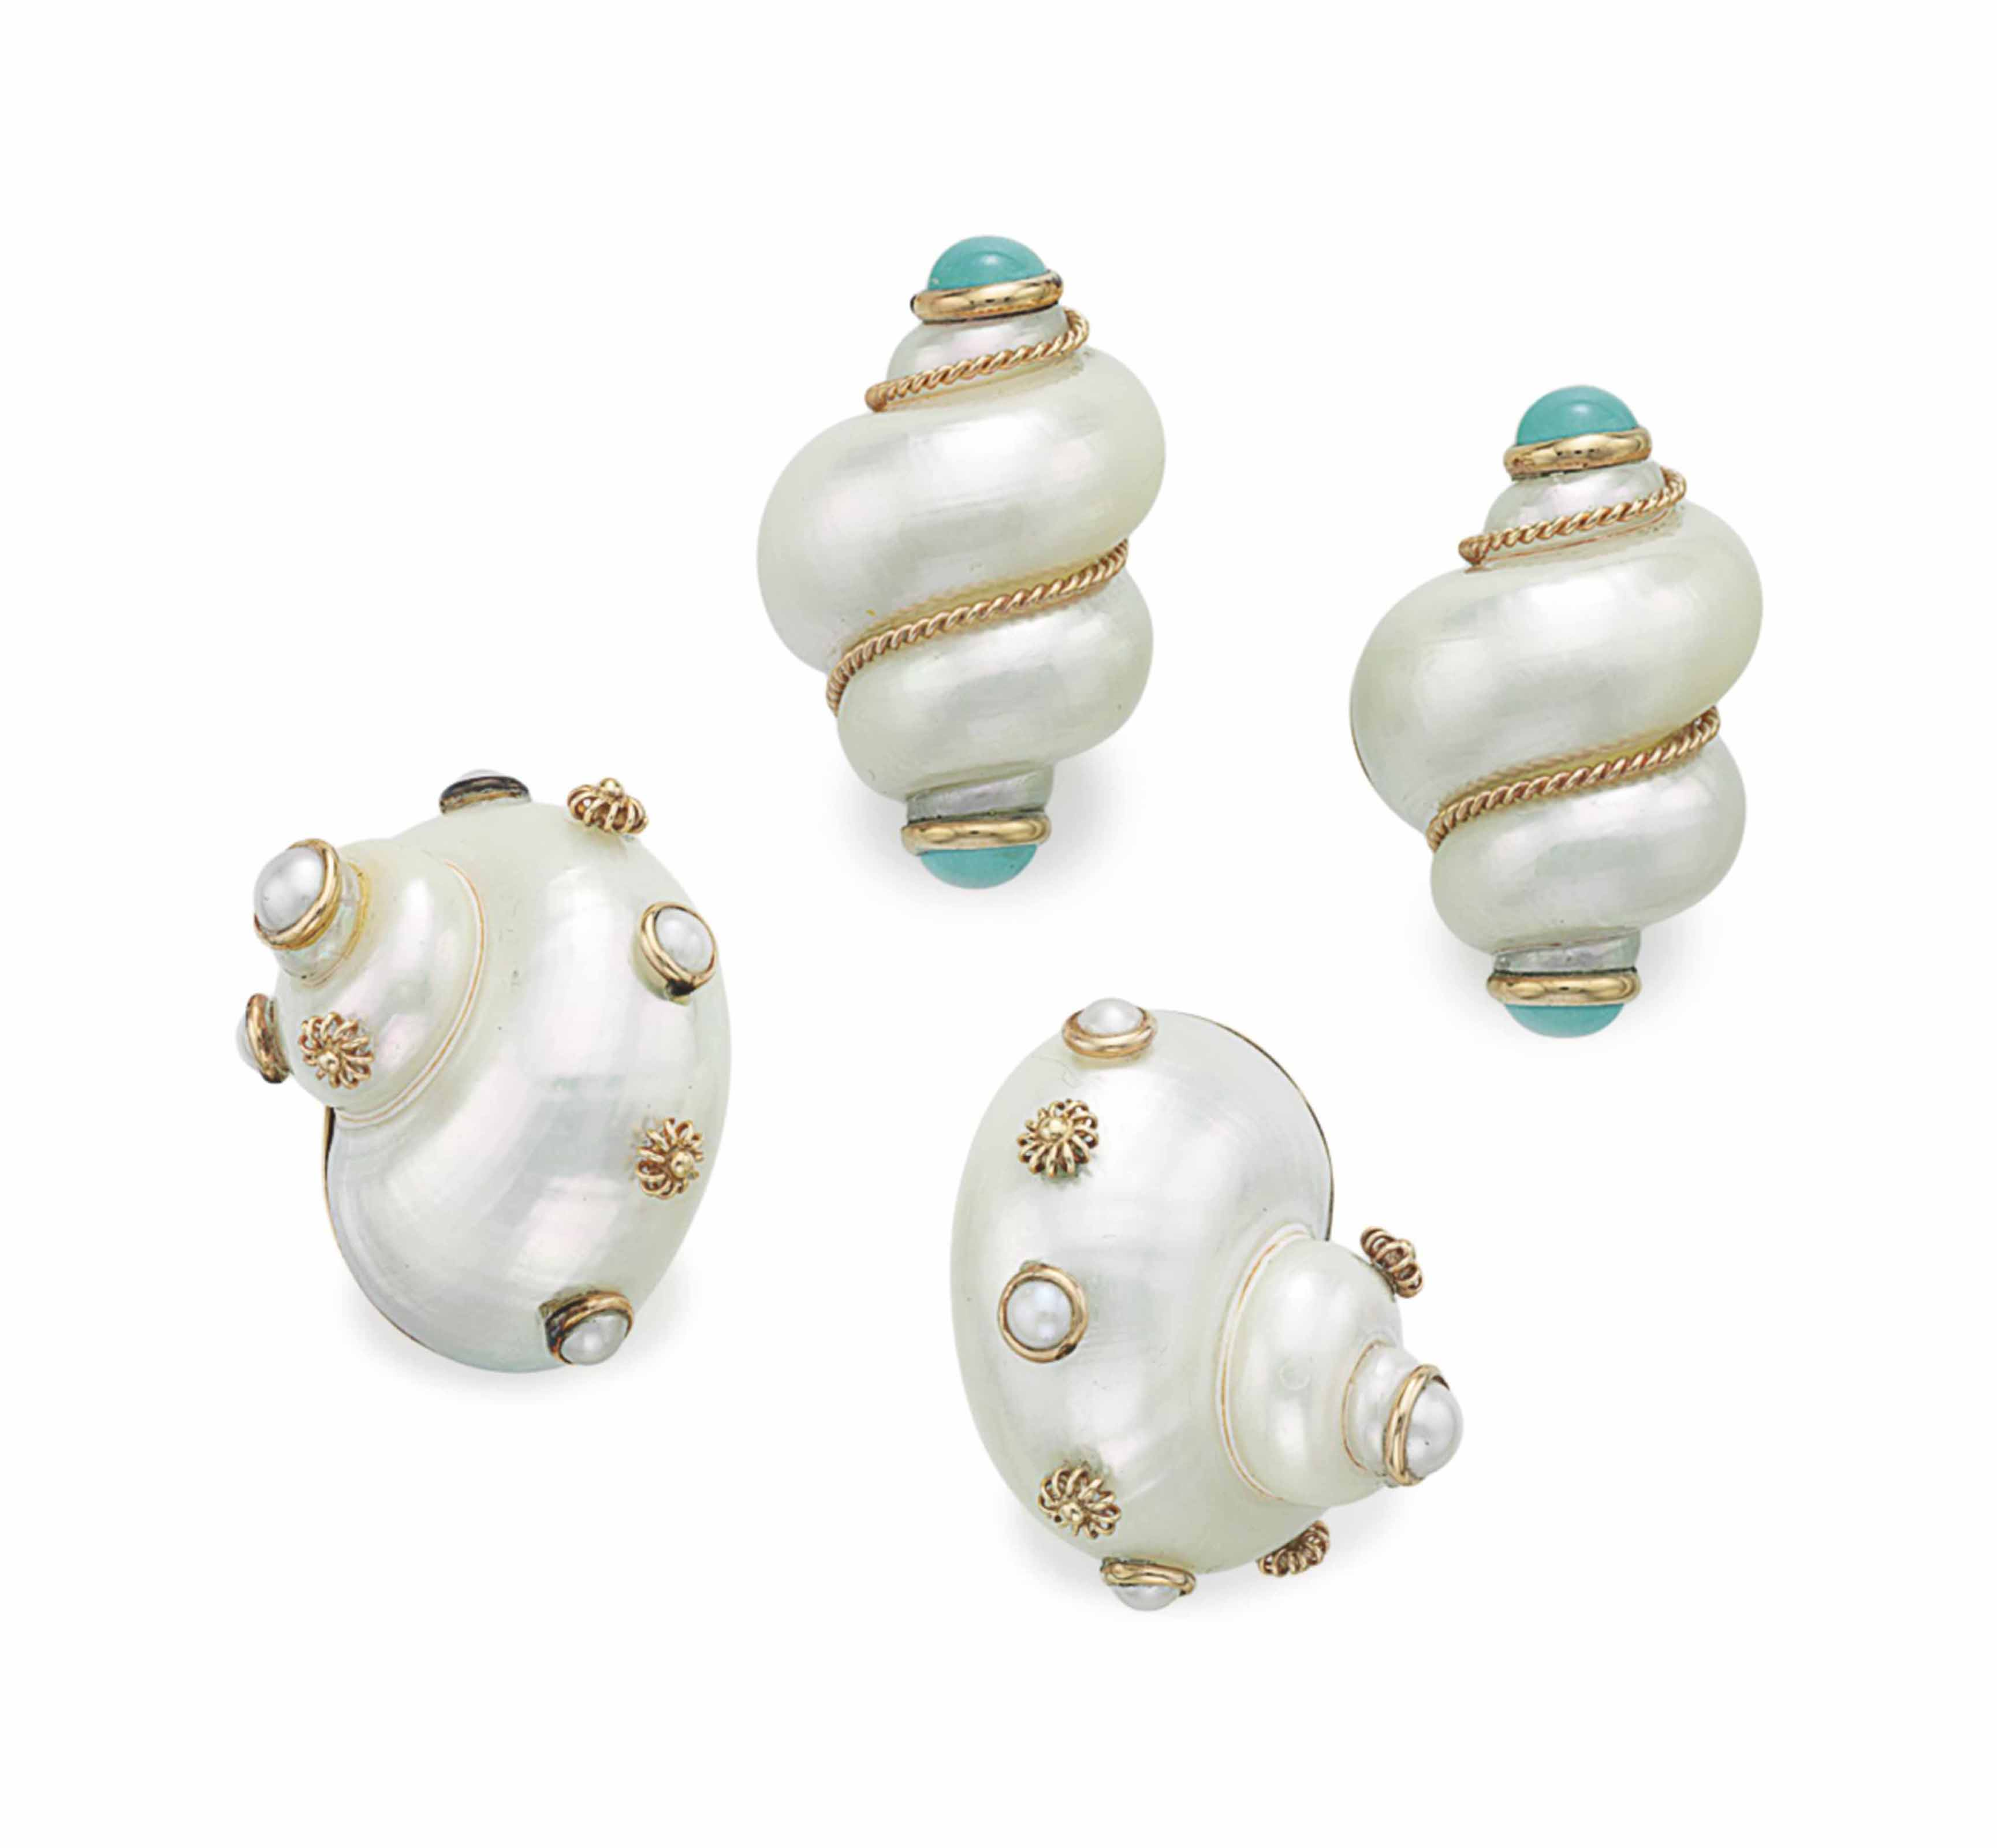 TWO PAIRS OF SHELL AND GOLD EAR CLIPS, BY MAZ